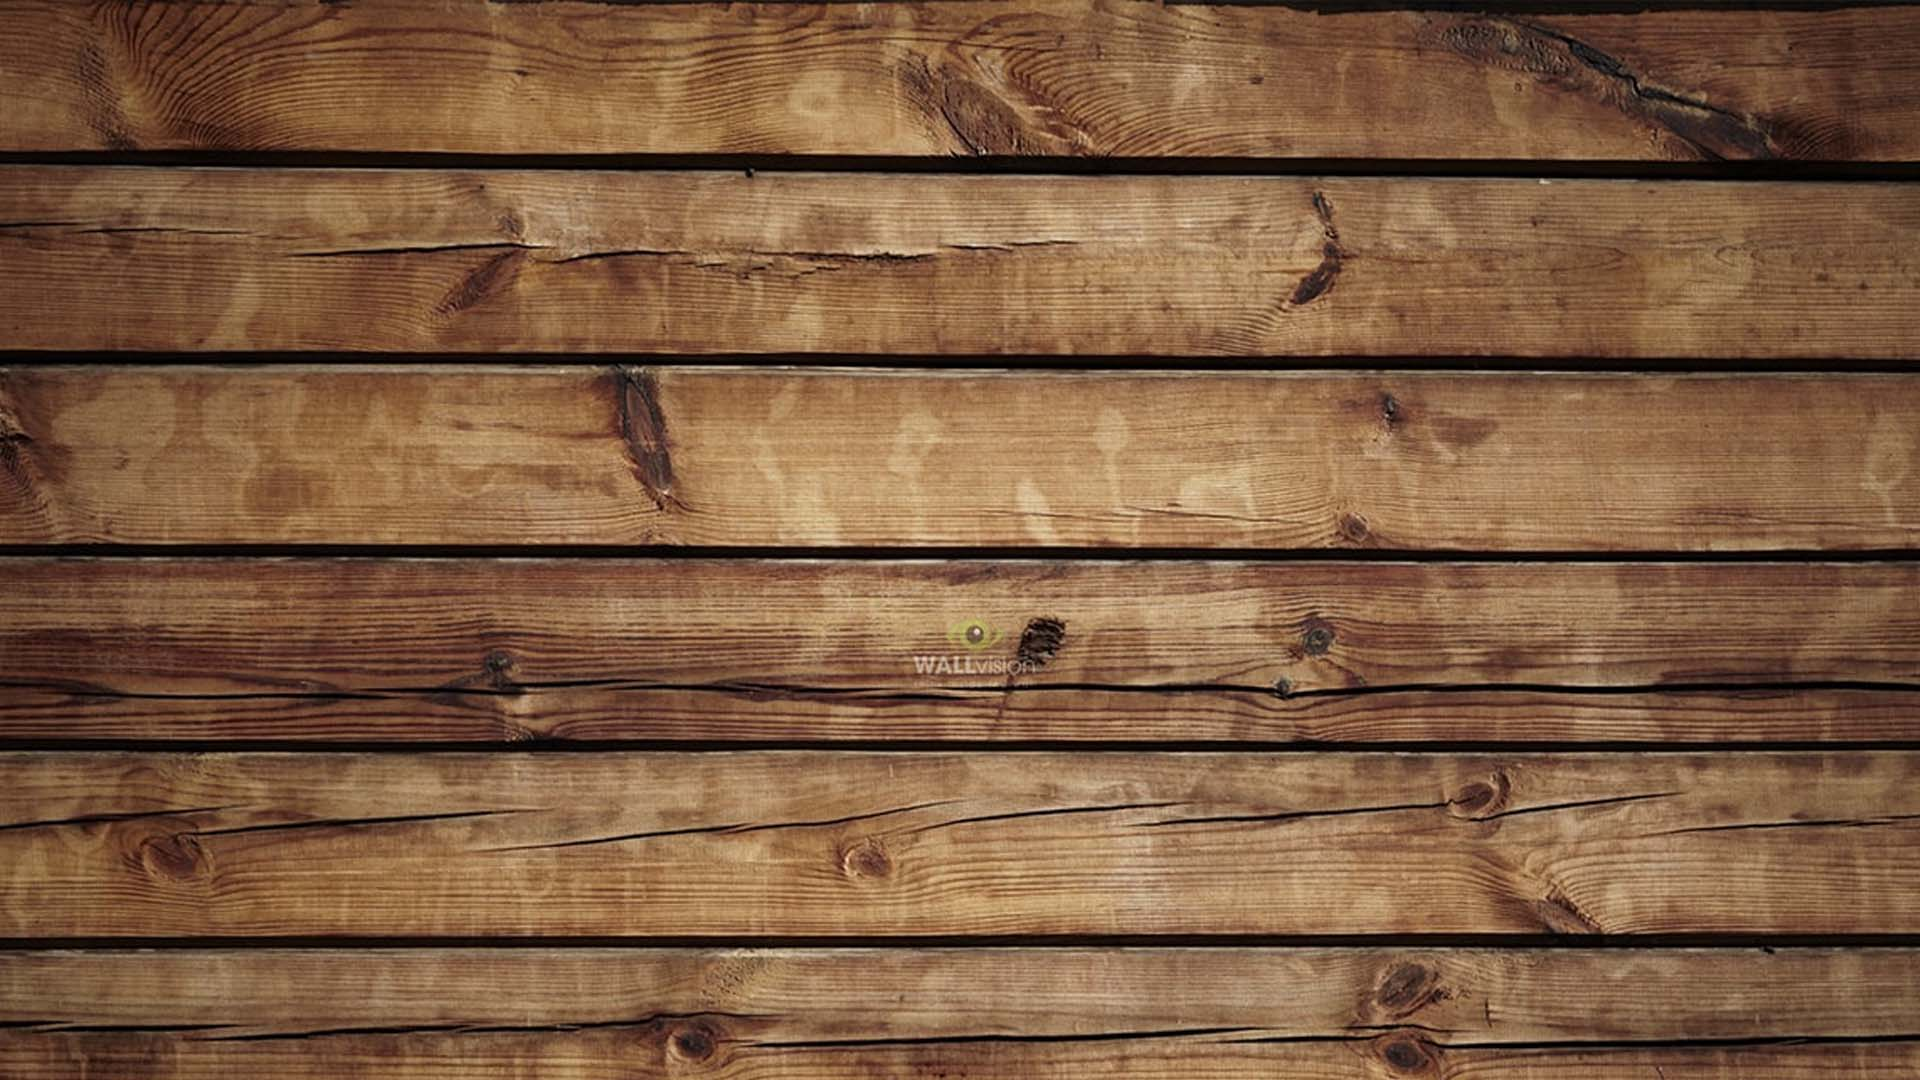 Free photo: Brown Wooden Pallets - Abandoned, Rust, Wood ...